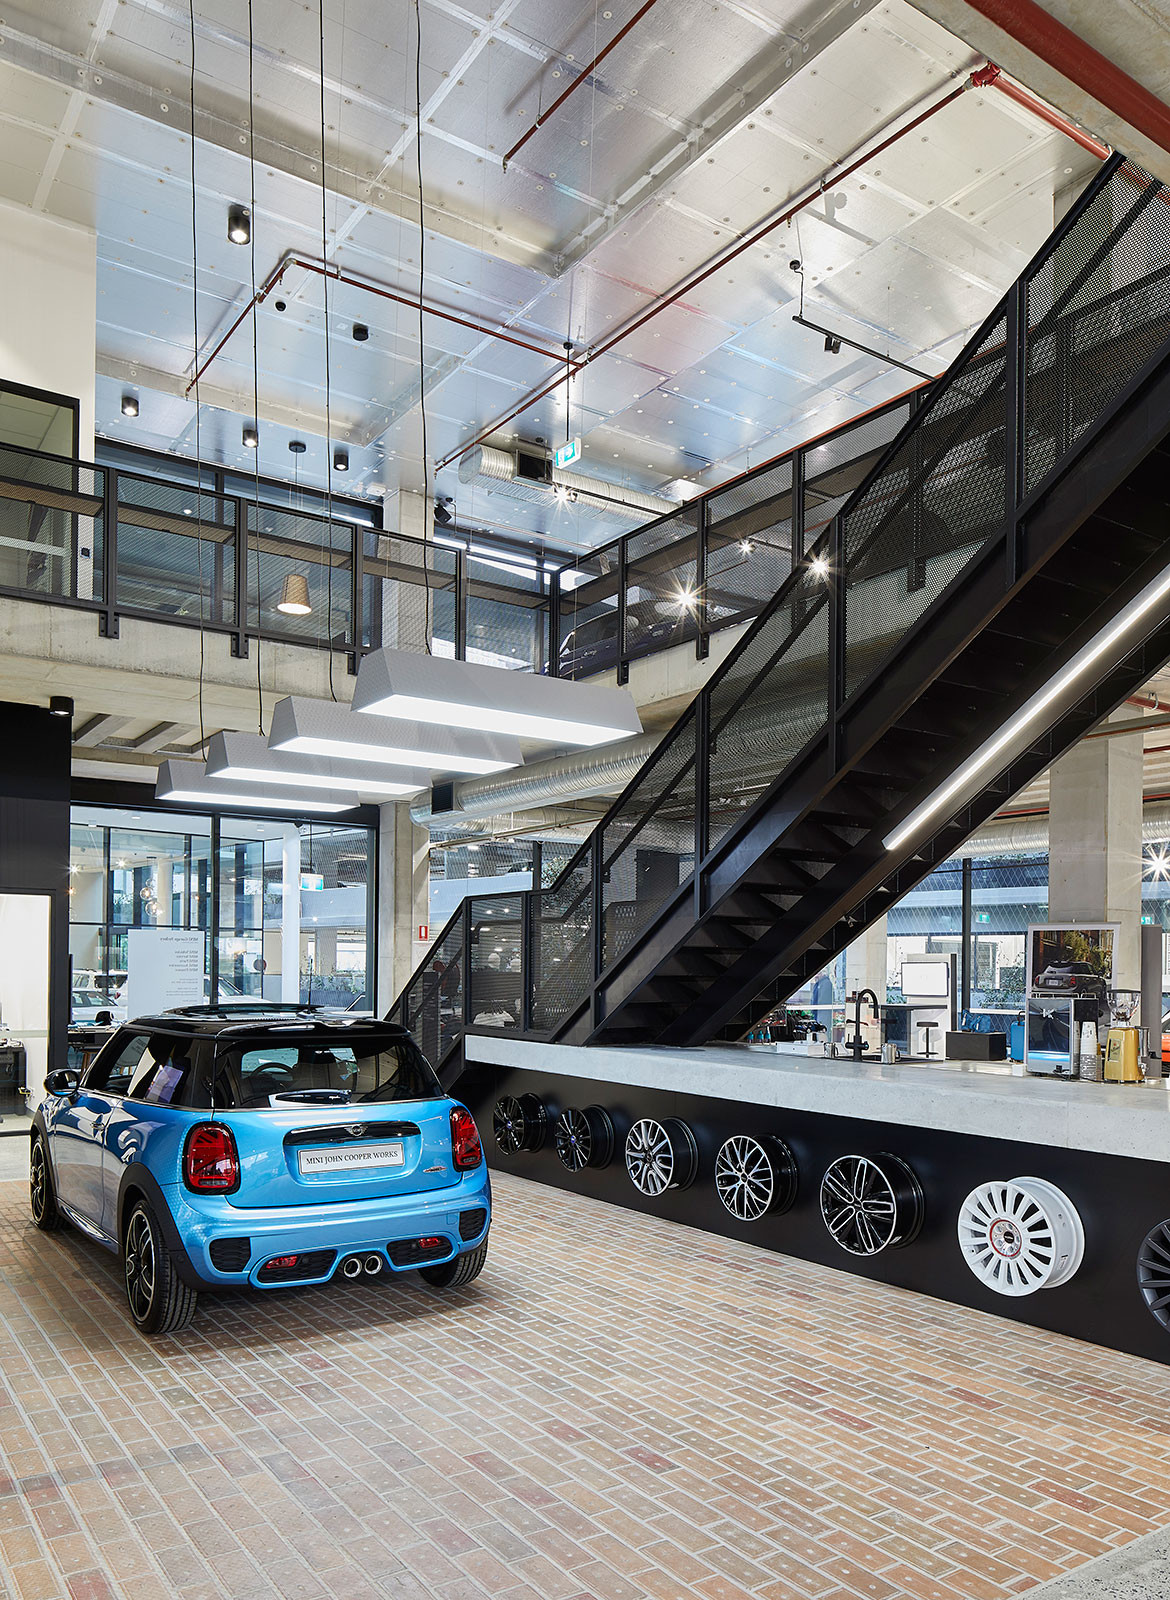 BMW MINI Car Showroom by SJB CC Marin Mischkulnig mini tyres